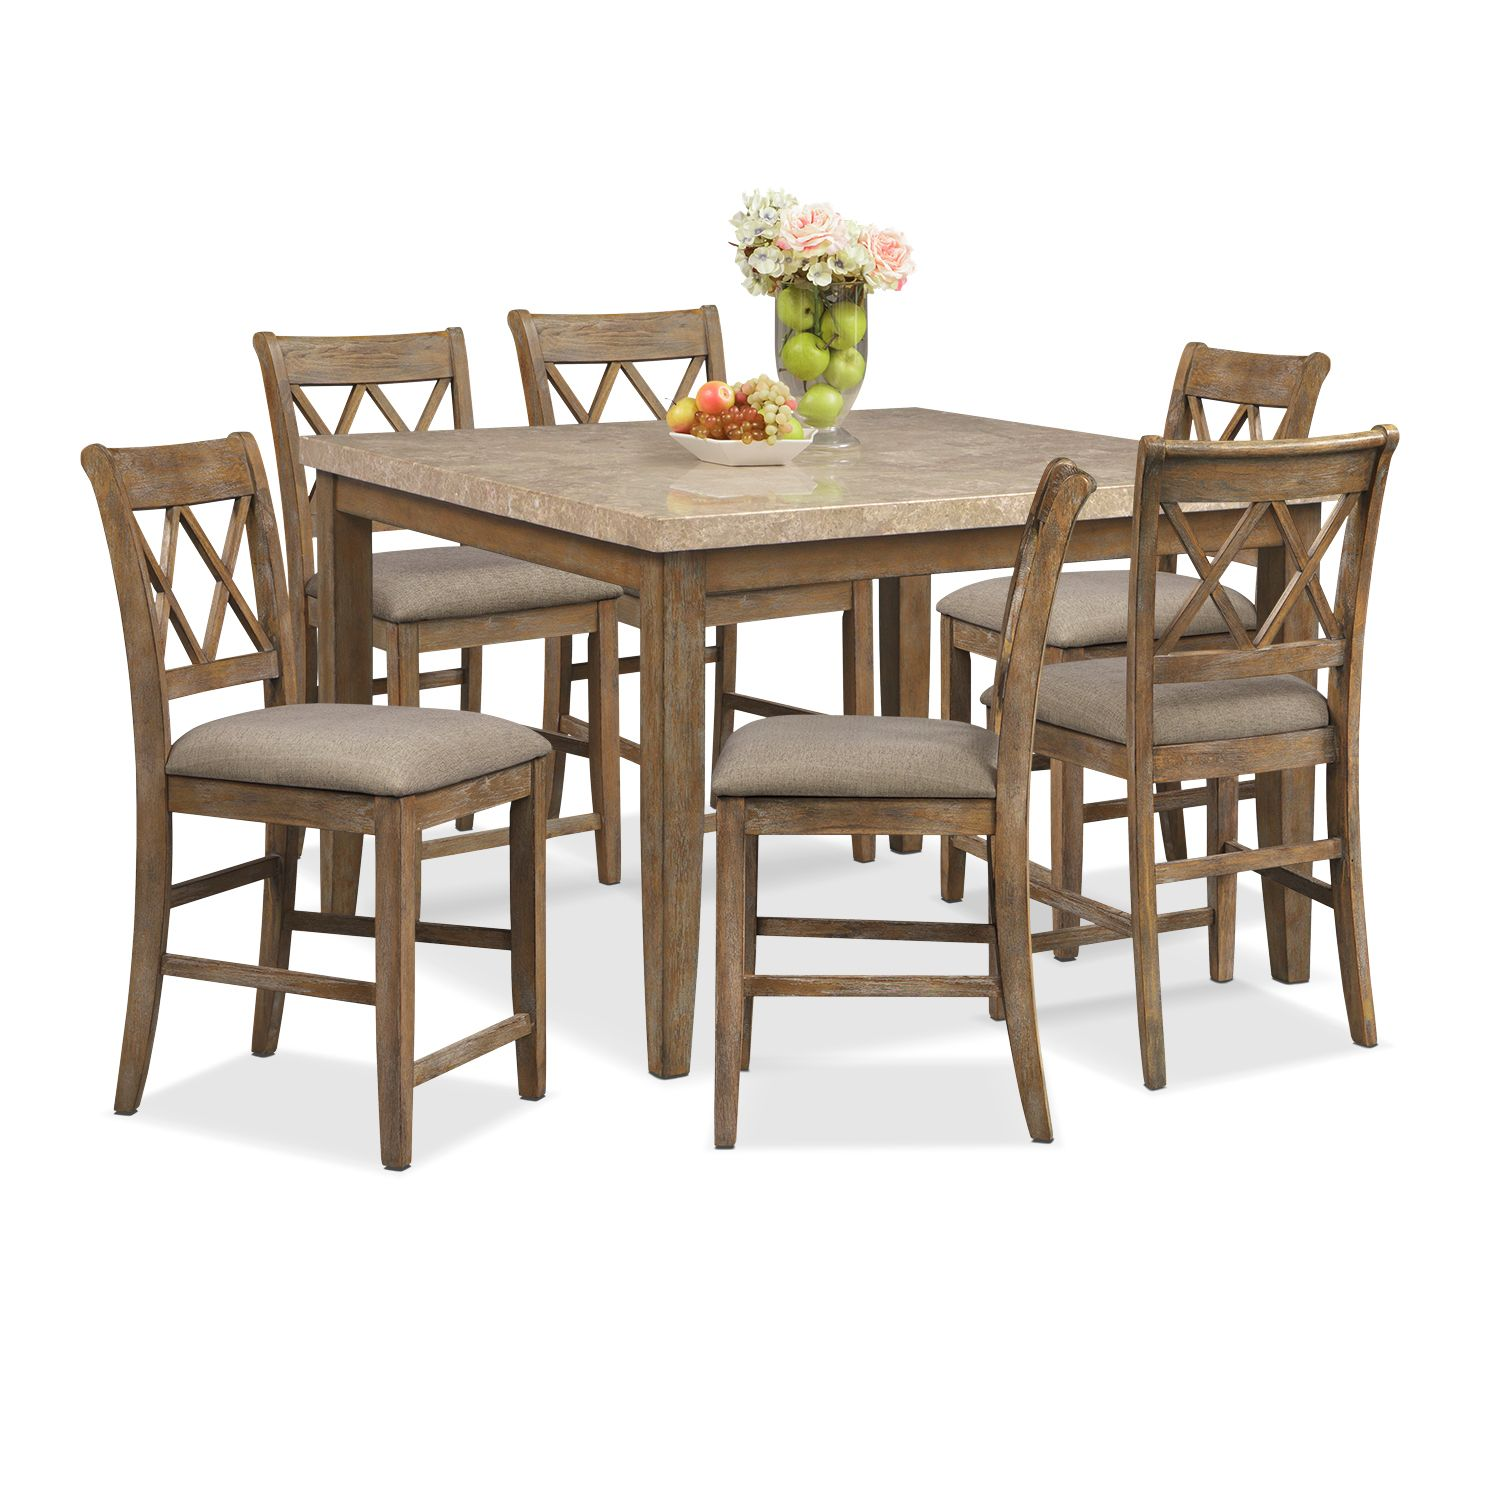 Sedona Gray 7 Pc. Counter Height Dining Room | American Signature Furniture